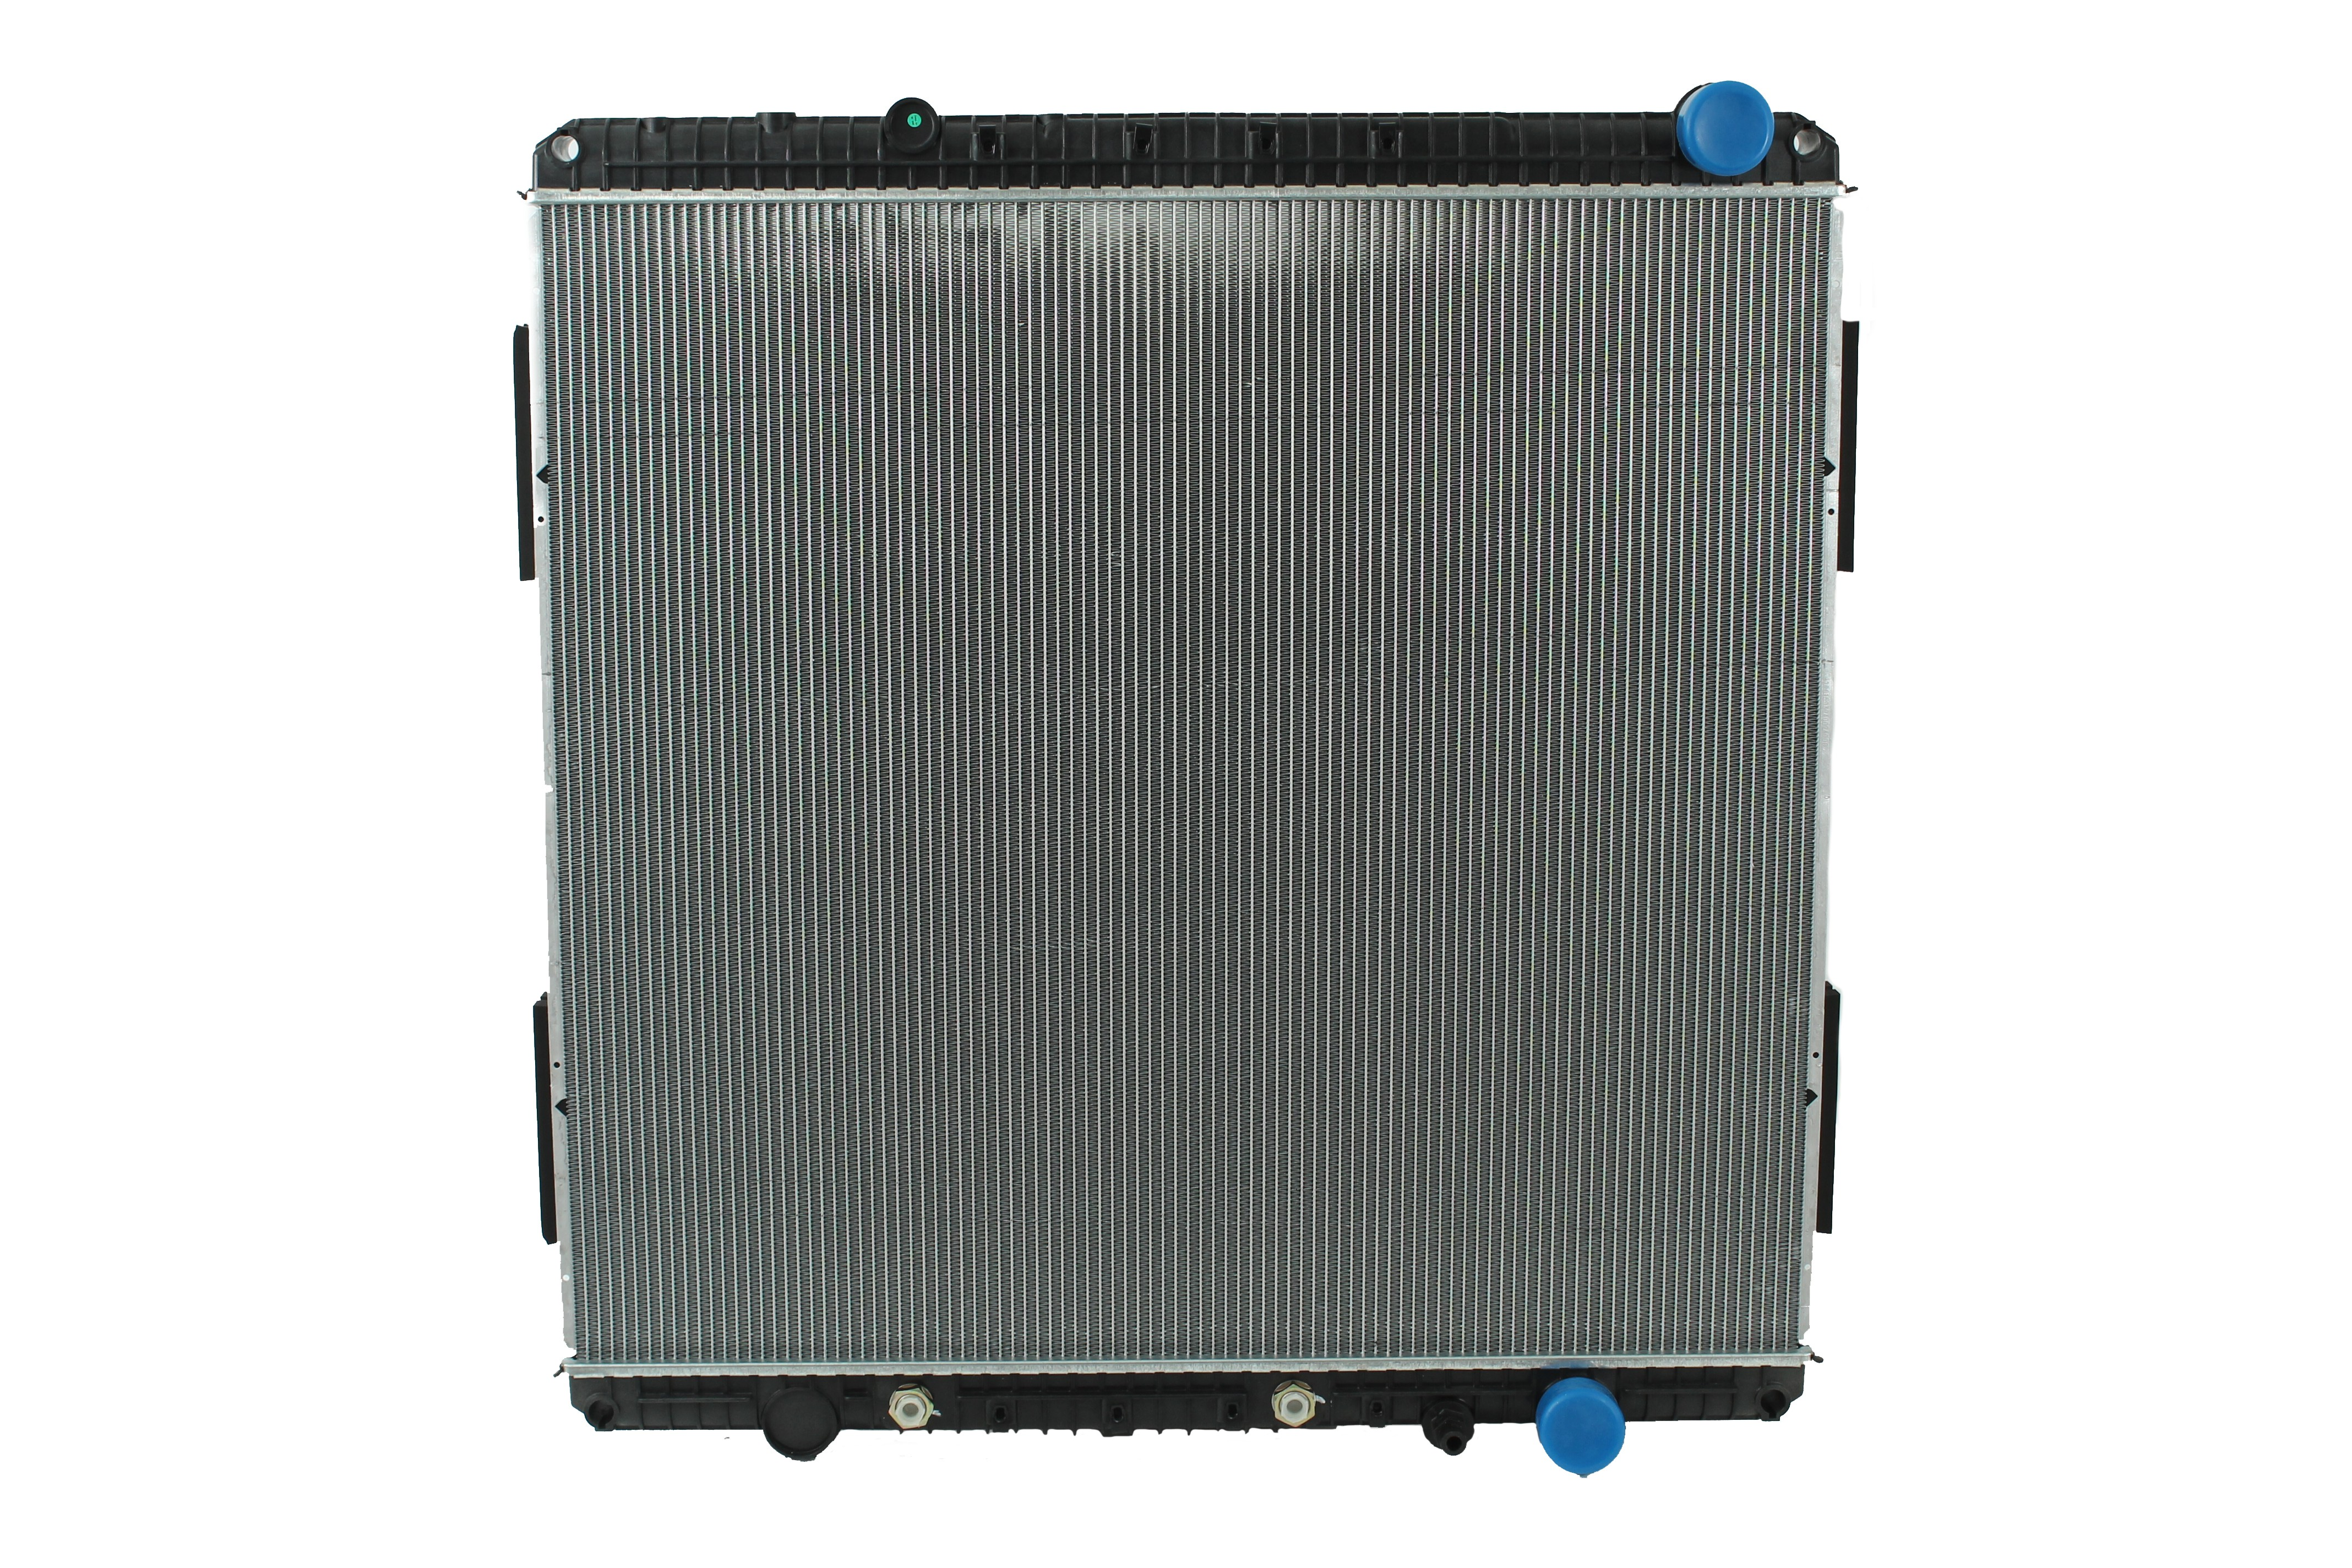 Freightliner 2013-2014 Cascadia Radiator Front View.